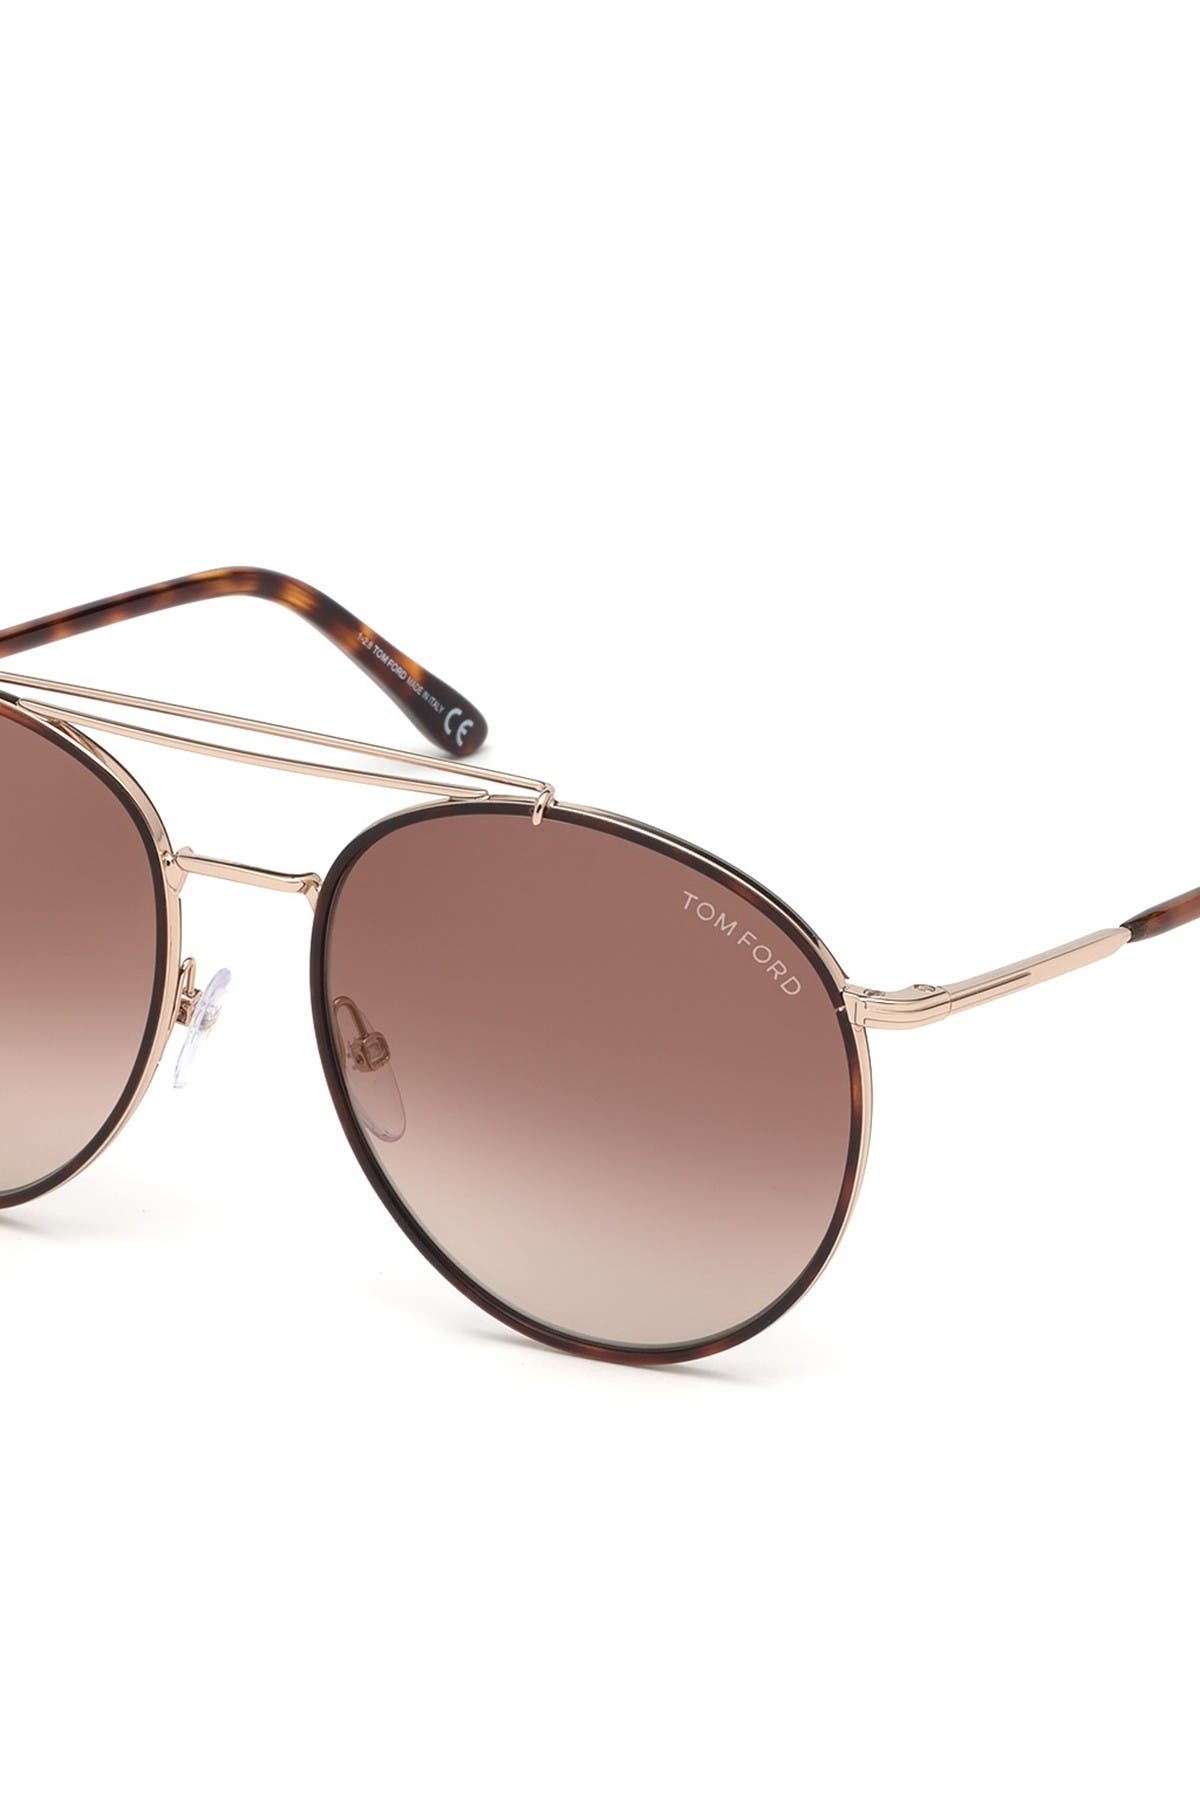 Image of Tom Ford Wesley 58mm Round Sunglasses